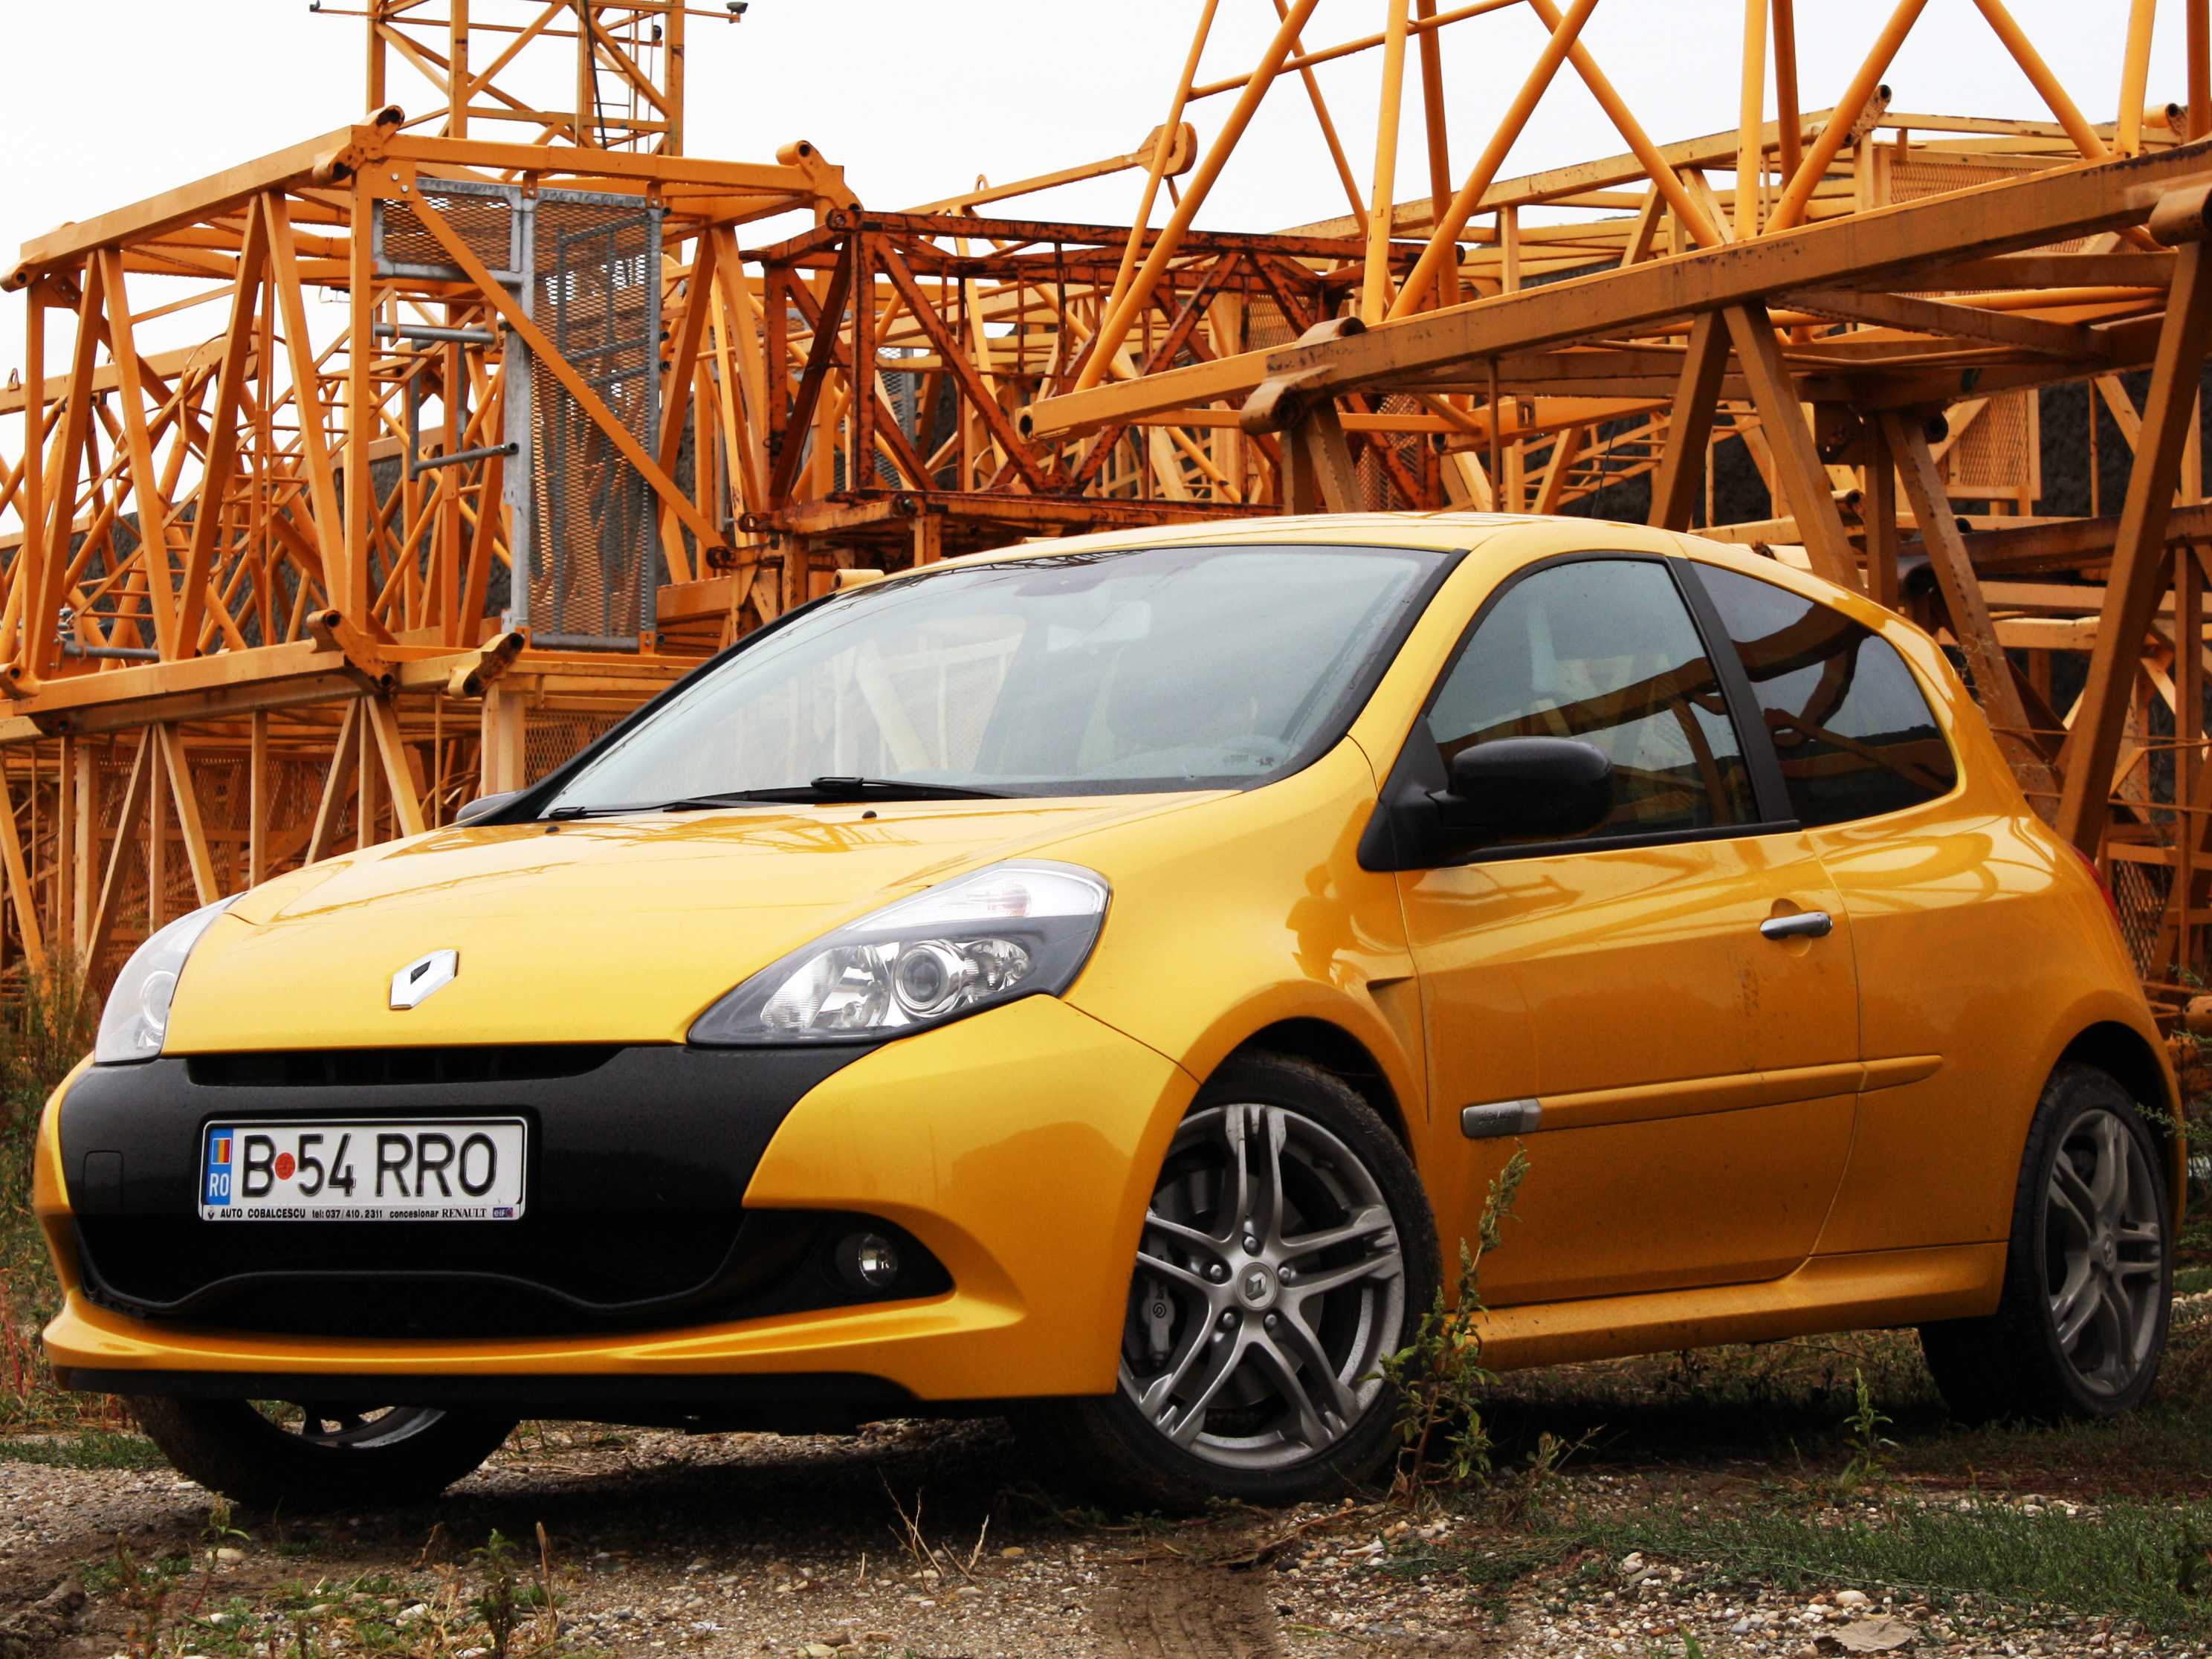 renault clio rs facelift analiz financiar. Black Bedroom Furniture Sets. Home Design Ideas